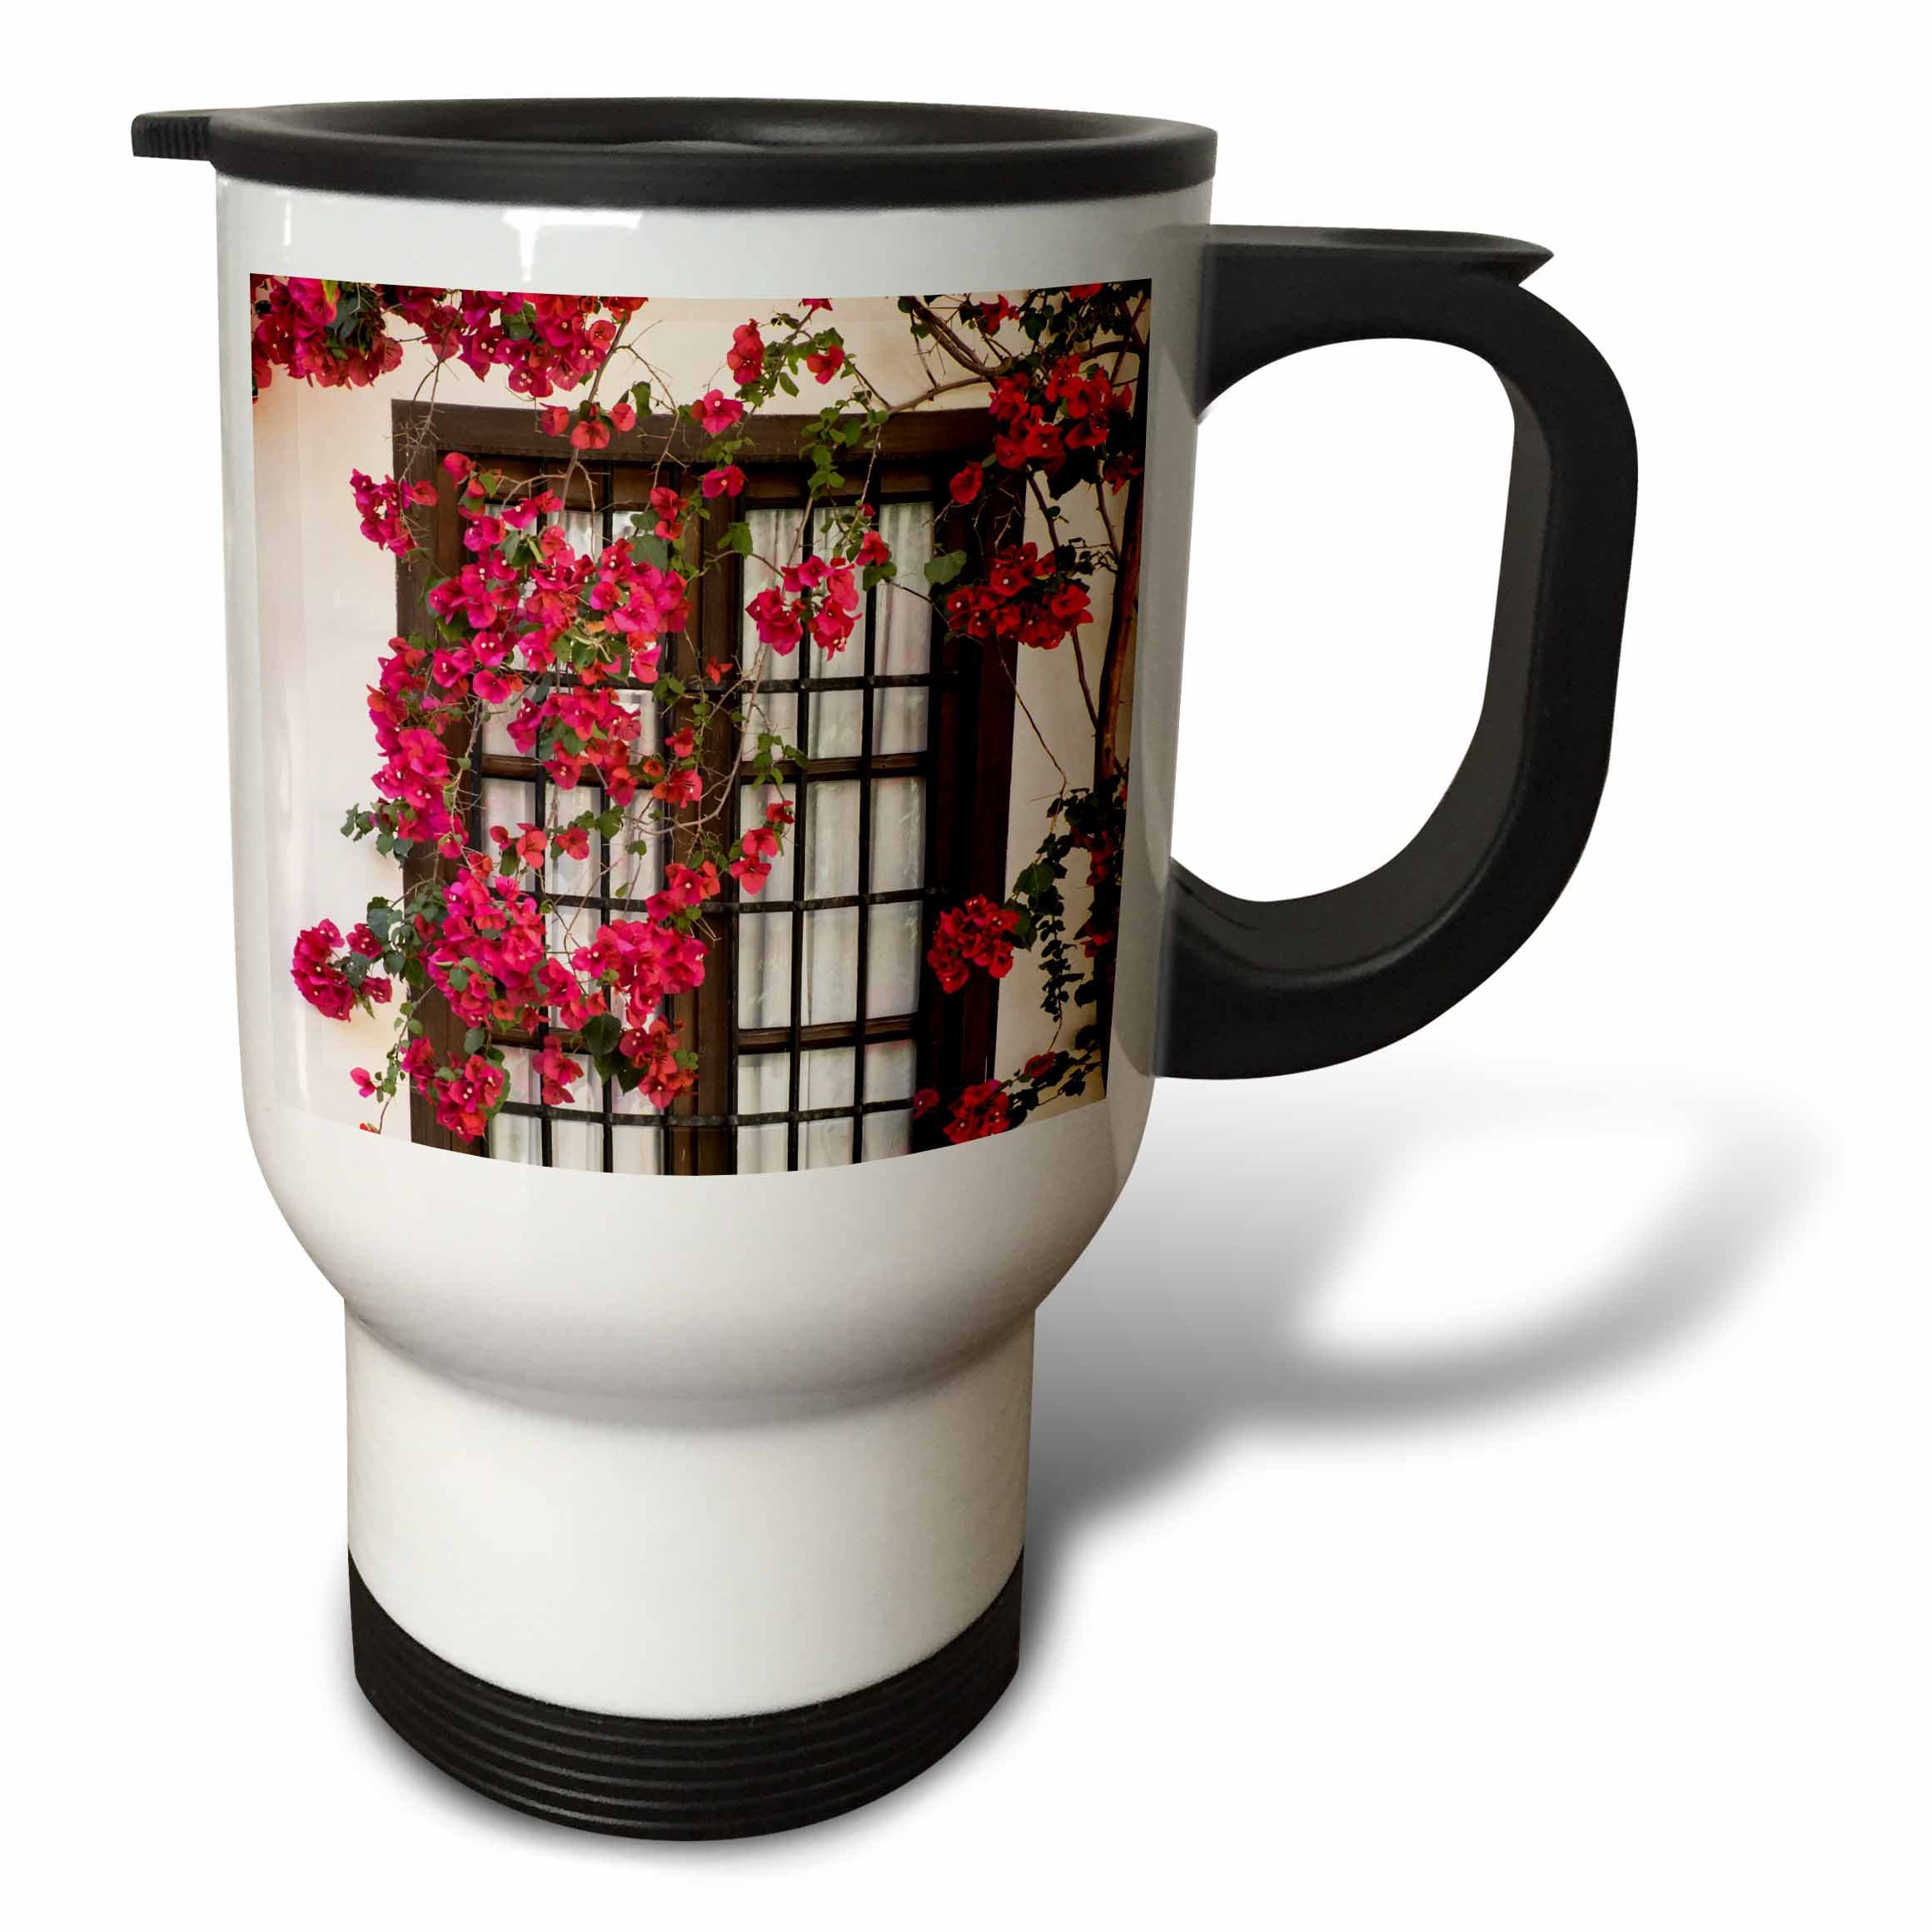 3dRose Danita Delimont - Flowers - Spain, Andalusia. Cordoba. Red bougainvillea and house window. - 14oz Stainless Steel Travel Mug (tm_277893_1)